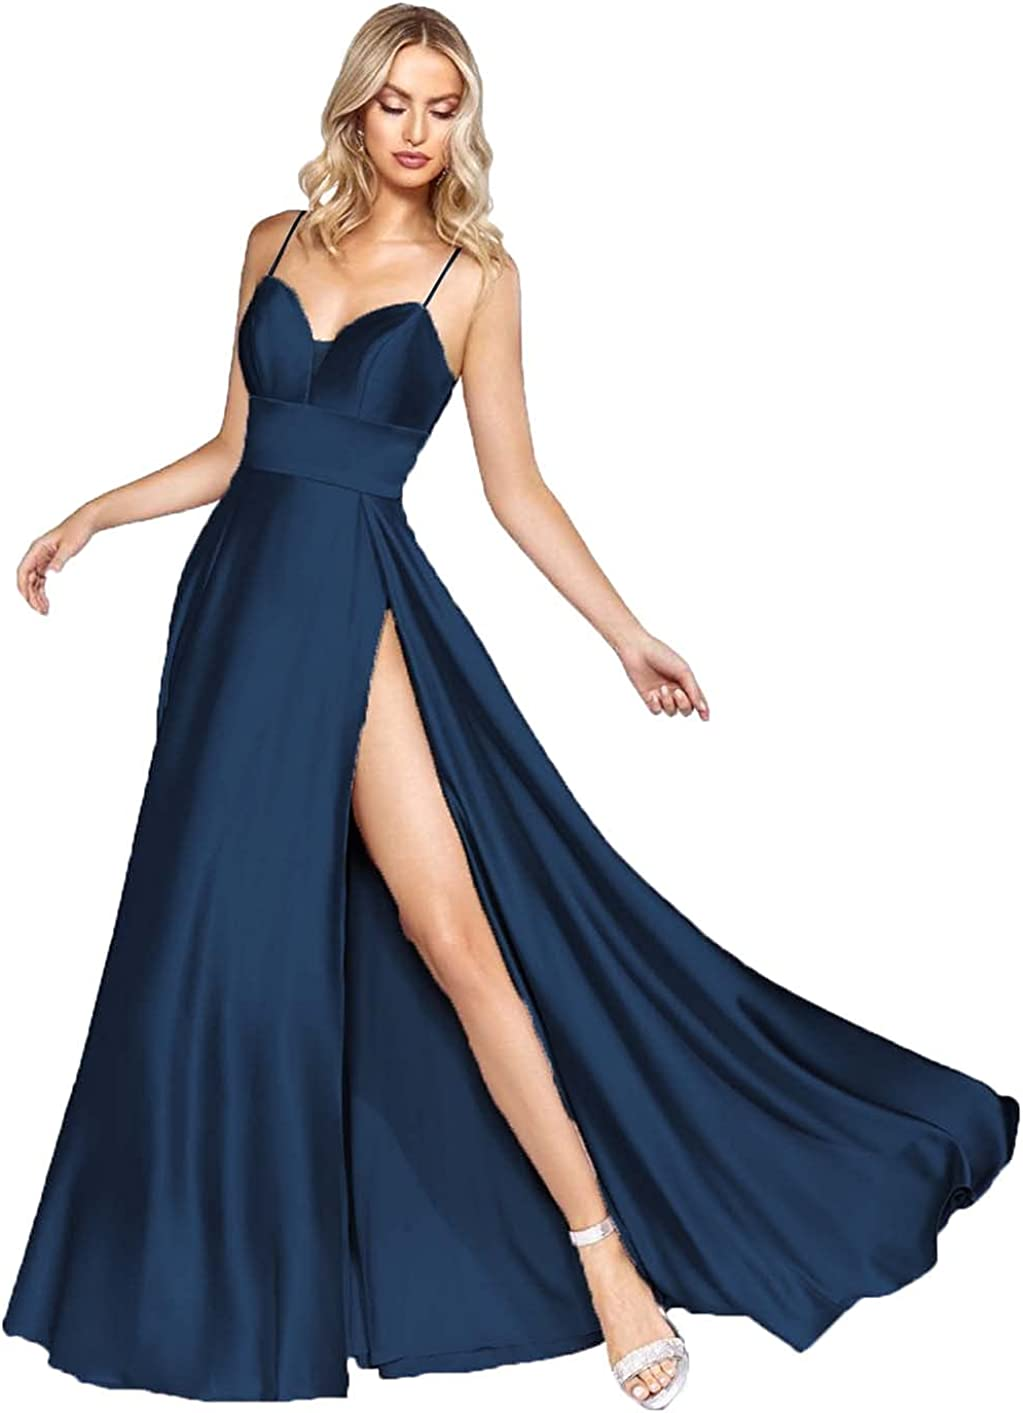 LINGLINGDING Women's Spaghetti Straps V Neck Long Bridesmaid Dresses with Slit Pleated Satin Formal Evening Gown